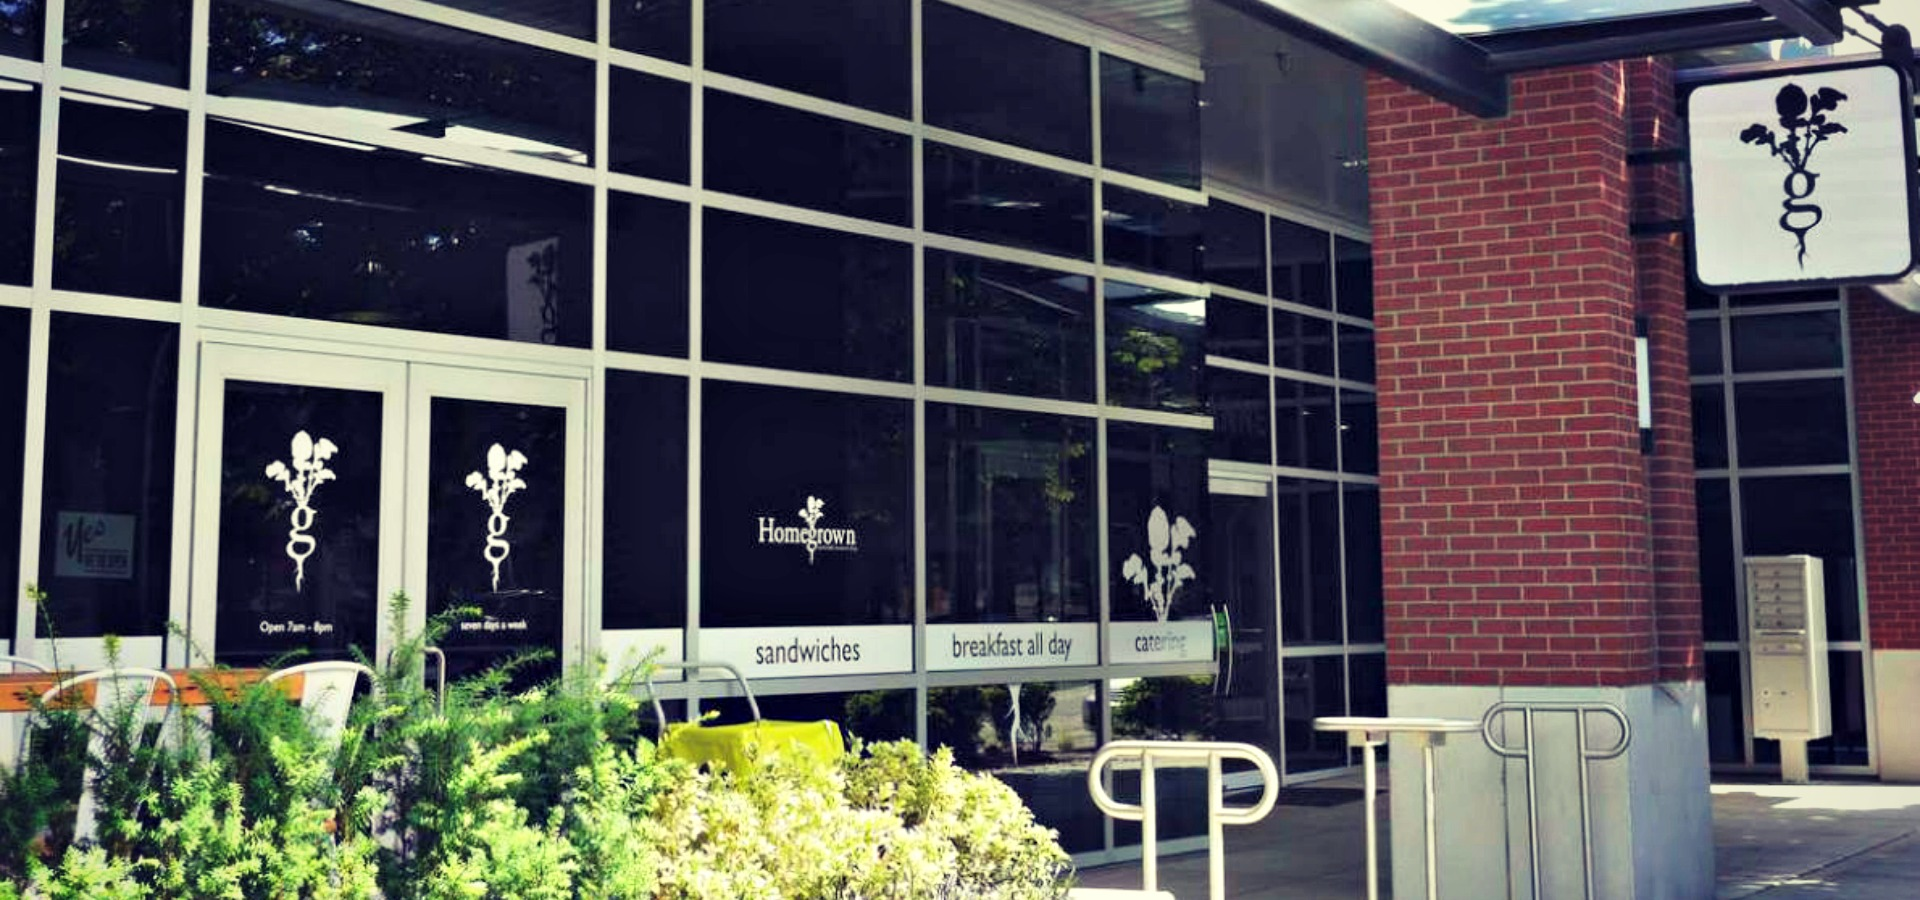 Homegrown Sustainable Sandwich Shop - Discover South Lake Union